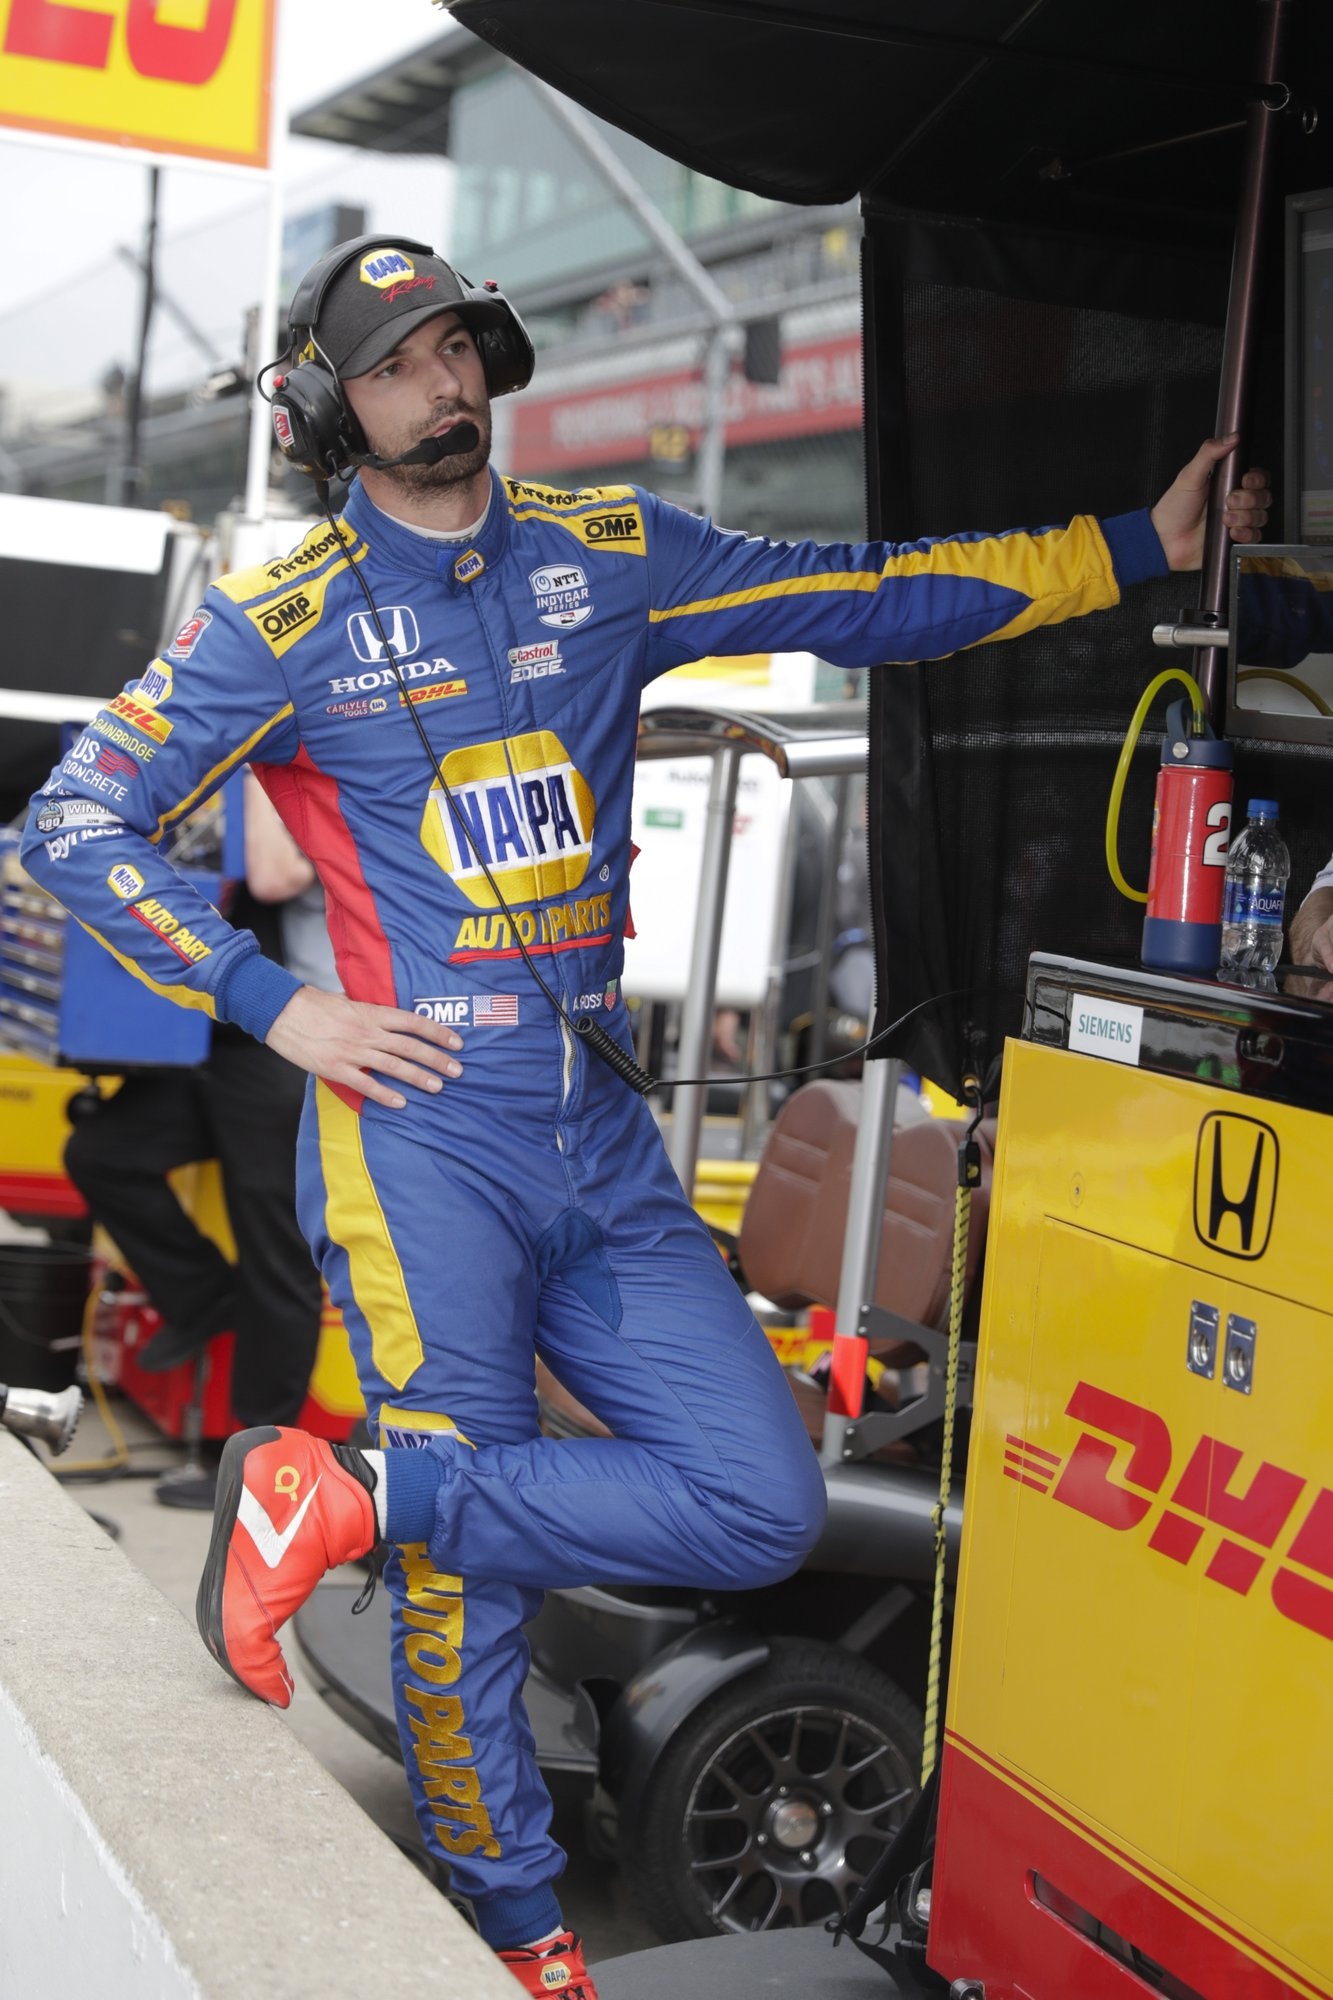 F1 eyes may have opened after Alonso's Indy 500 flop